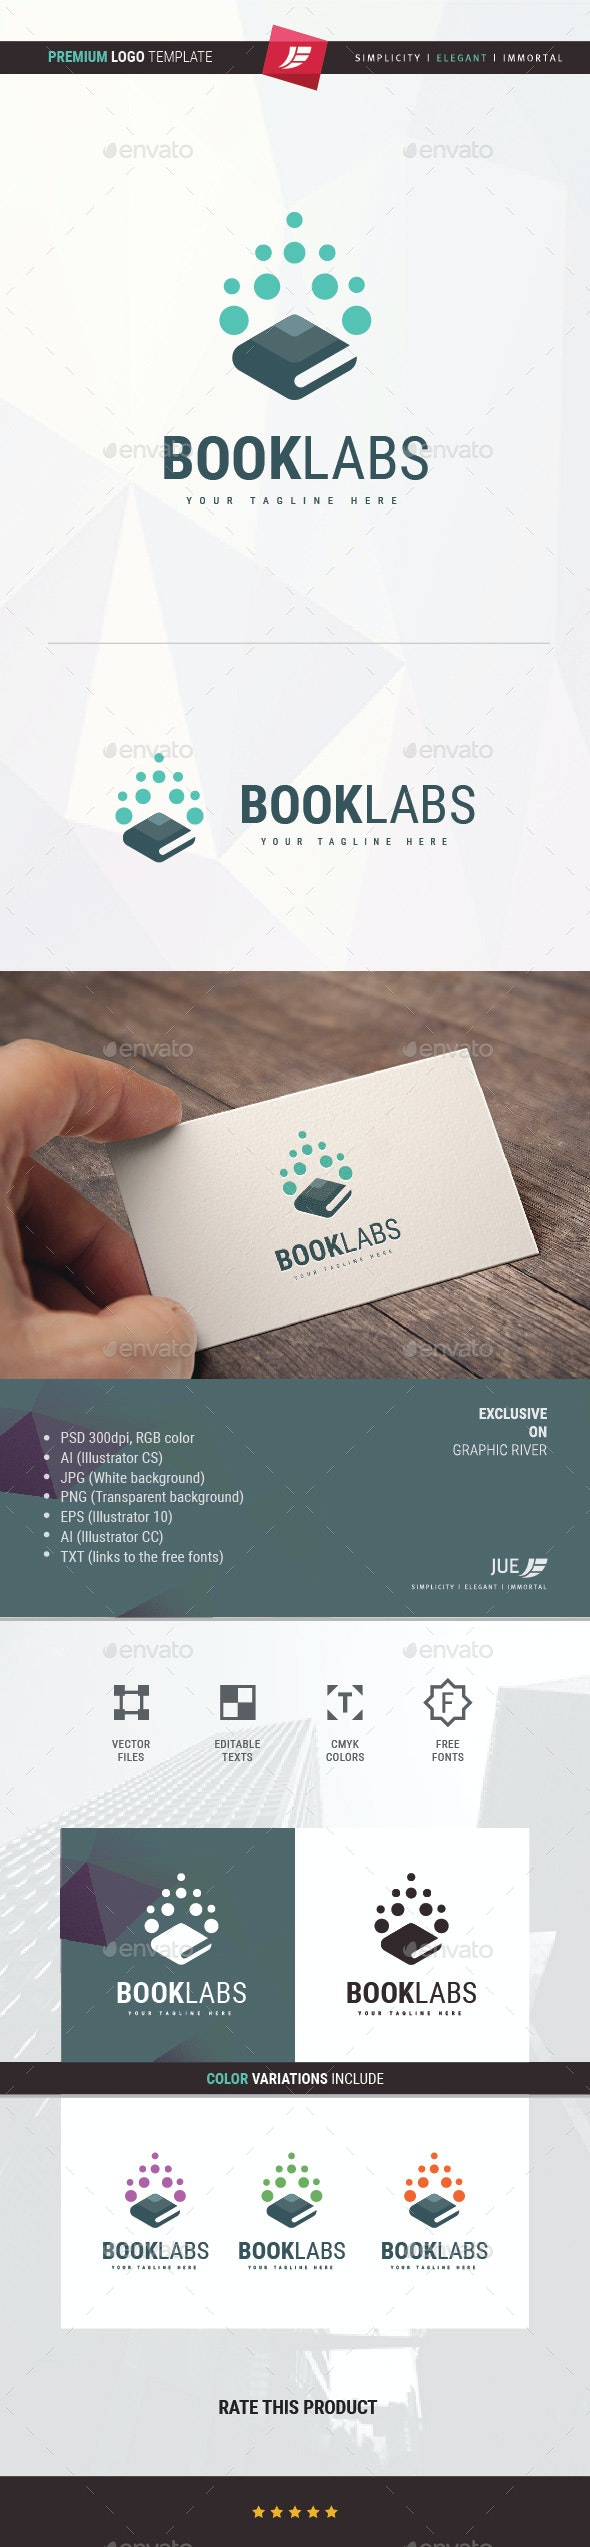 Book Lab Logo - College Logo Templates